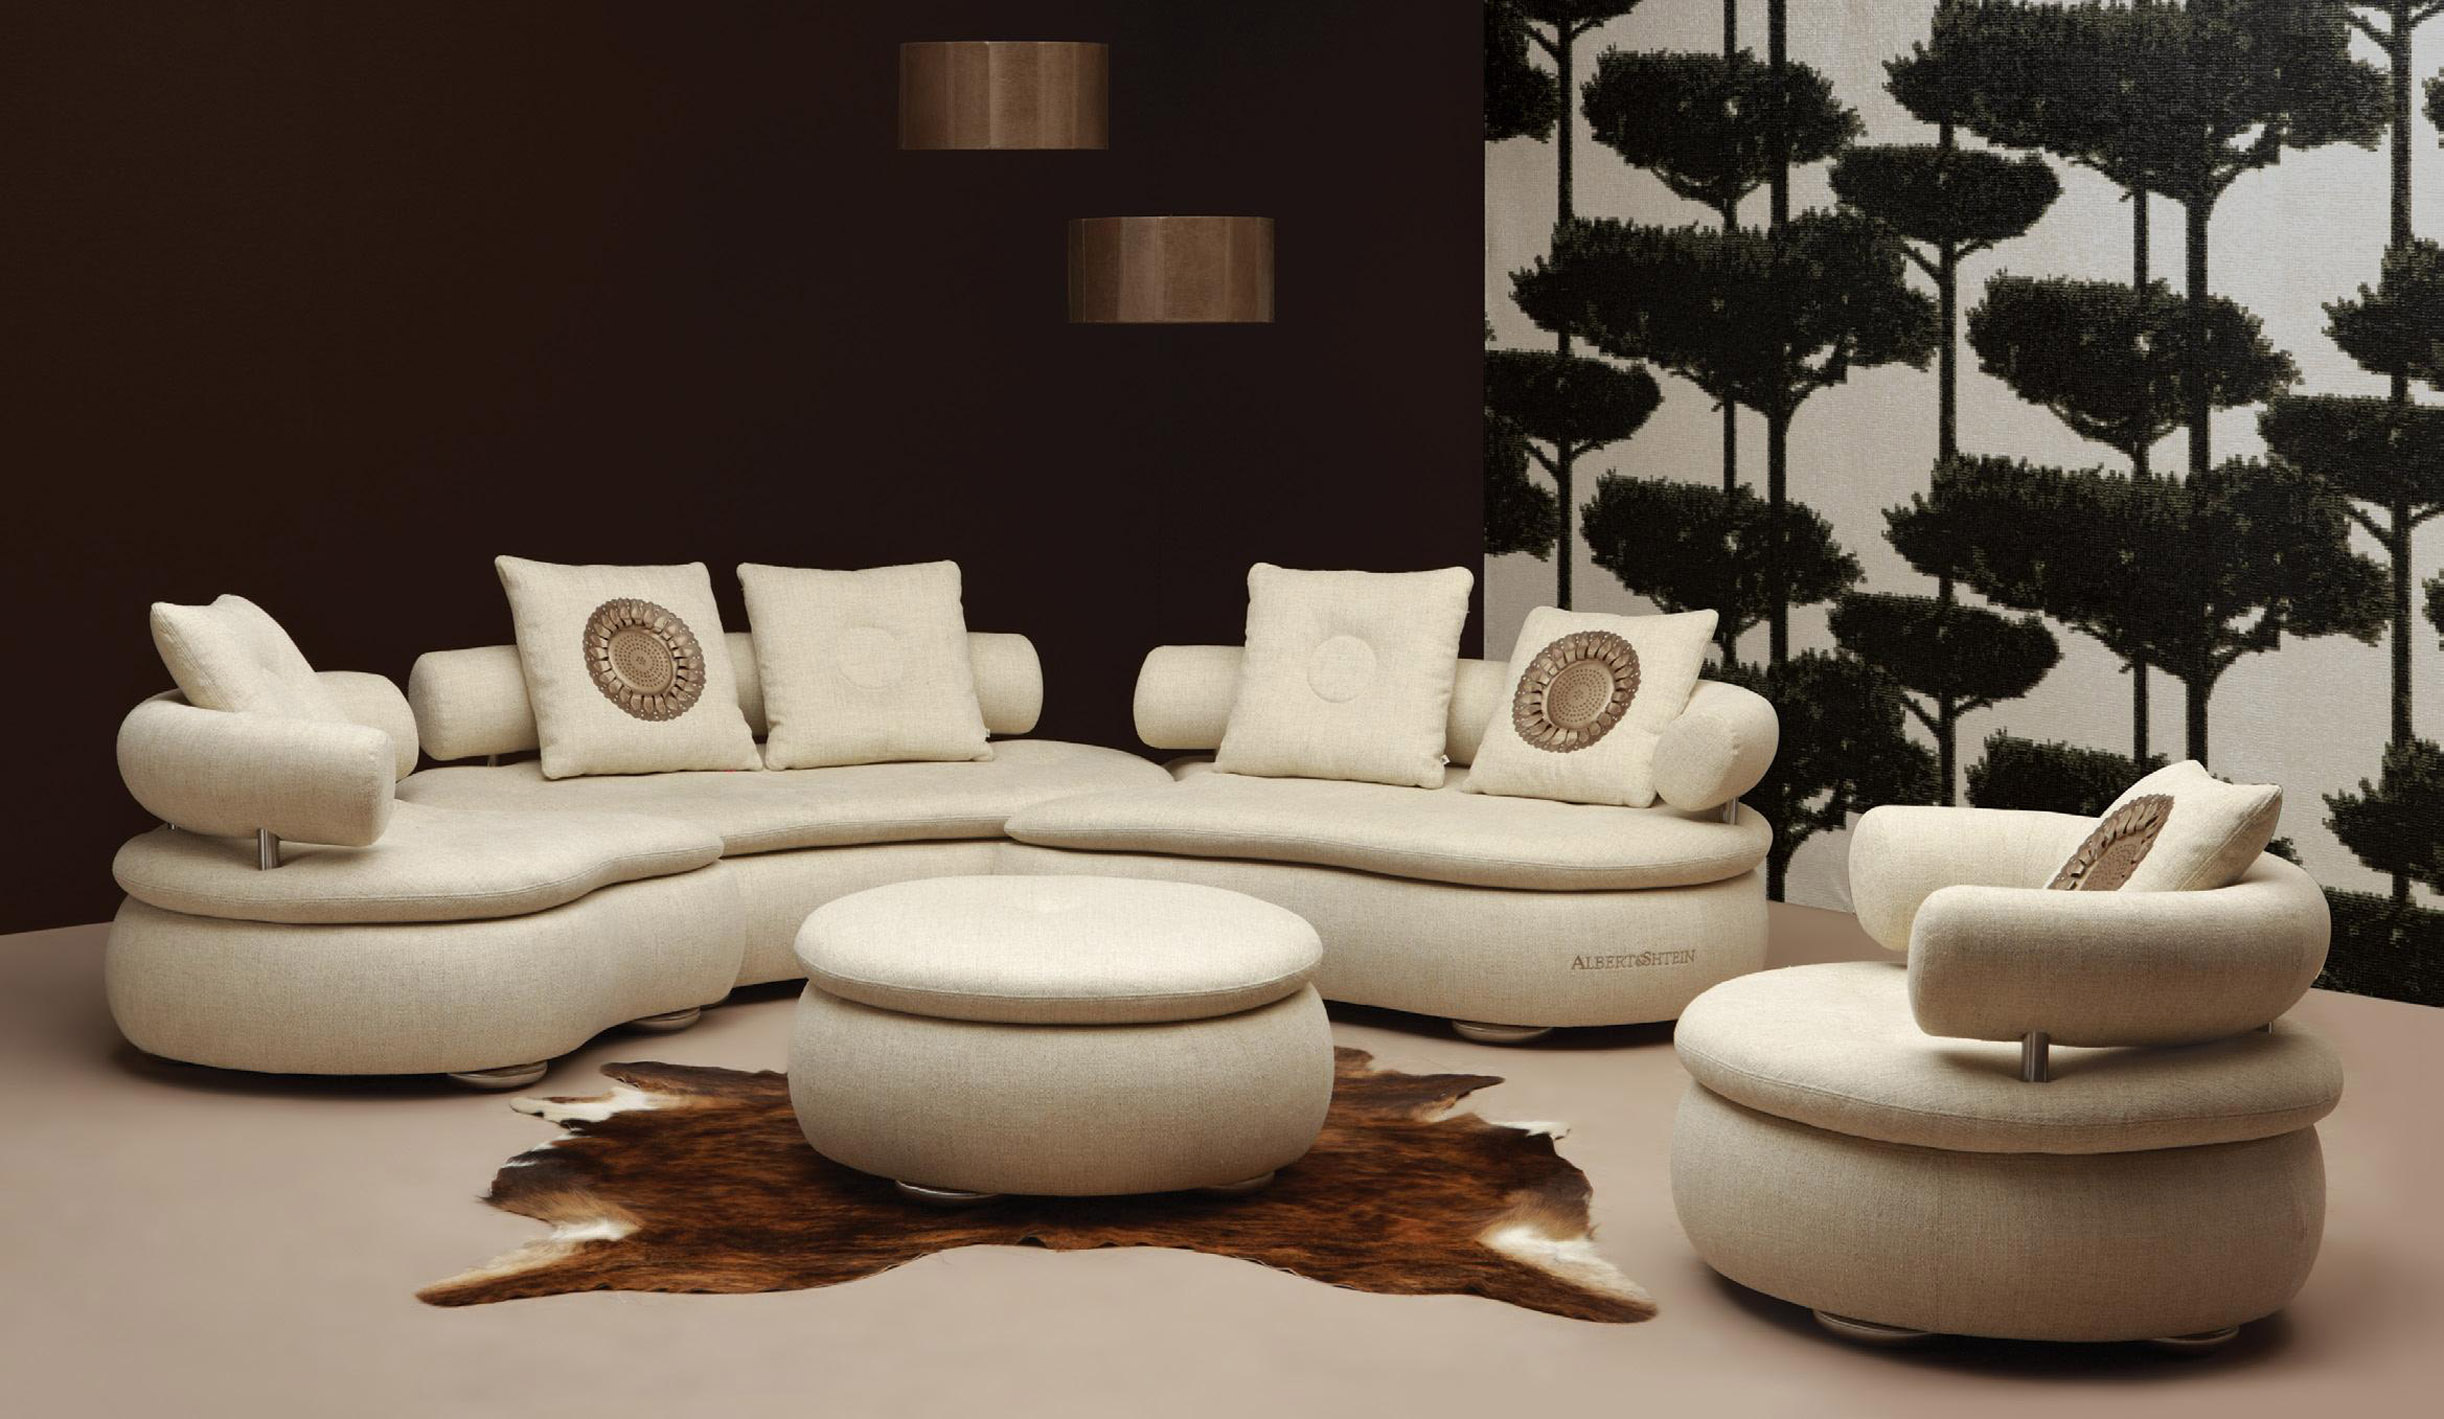 Round couches for small living rooms - Modern White Leather Sectional Couches Design Plus Cushions For Elegant Furniture Ideas